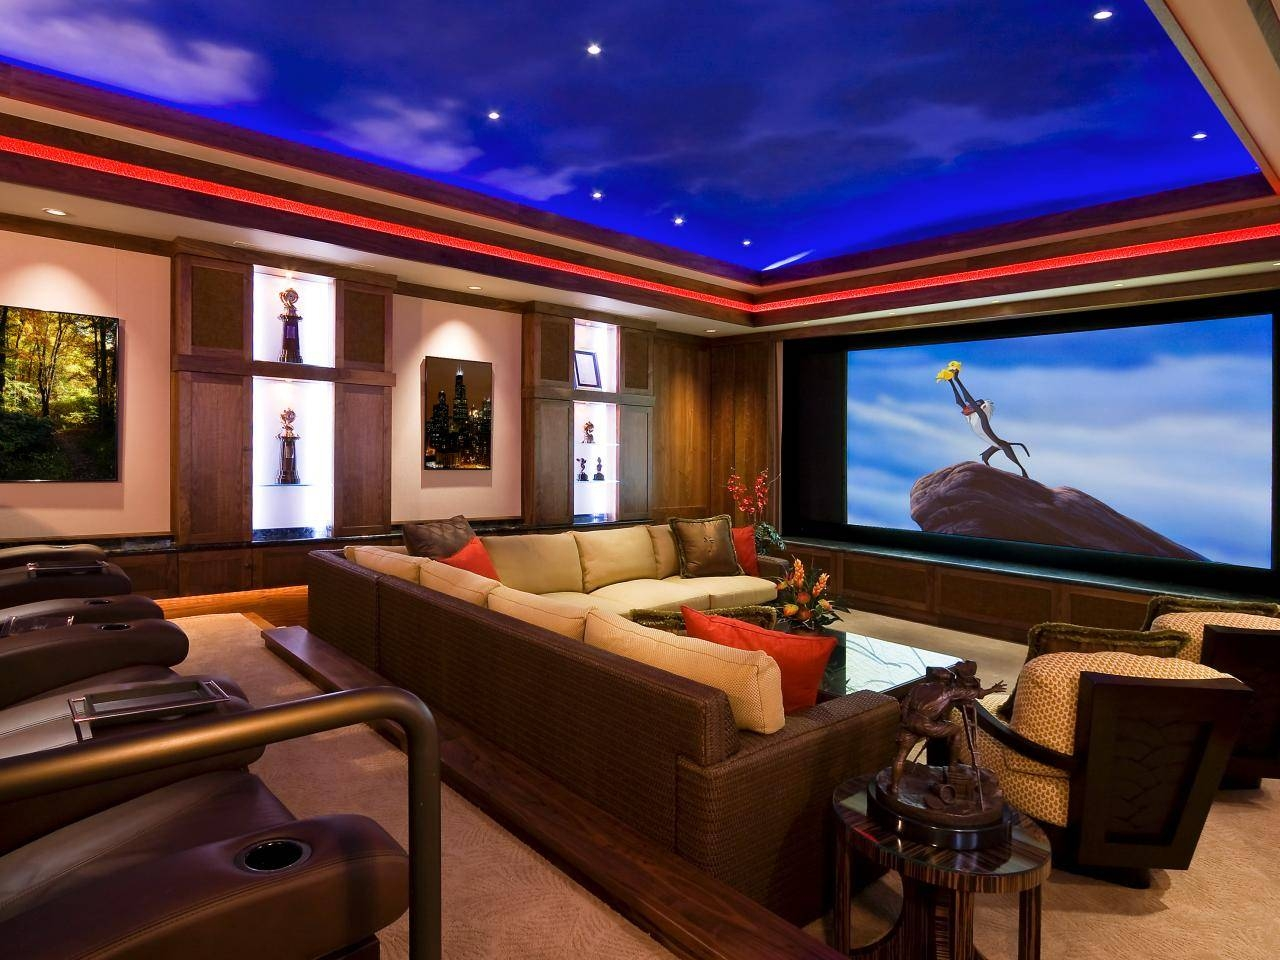 Choosing A Room For A Home Theater | Hgtv in Theater Room Sofas (Image 3 of 30)